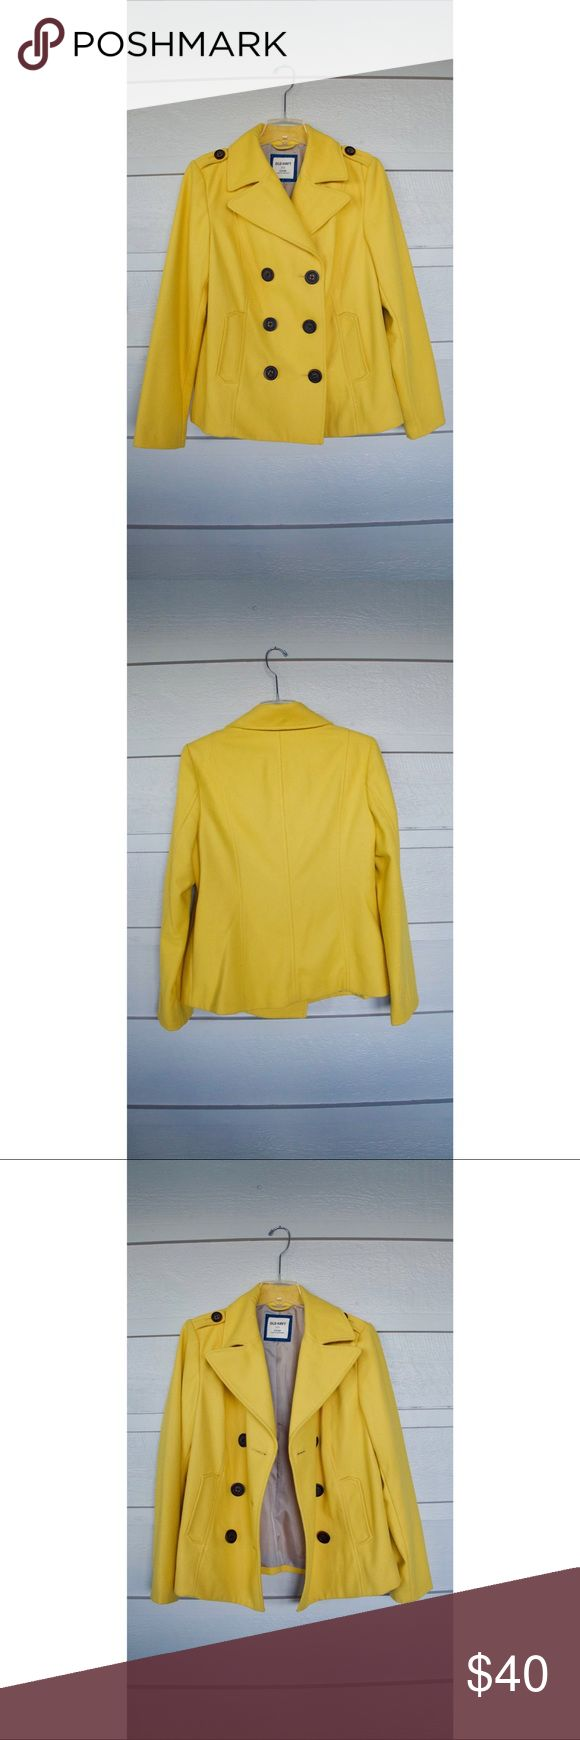 "Classic Women's Wool Peacoat NEVER WORN 24"" Women's Peacoat w/ wooden buttons Canary yellow classic cut w/ wide spread collar & notched lapel  Wool/Poly Dry clean Old Navy Jackets & Coats Pea Coats"